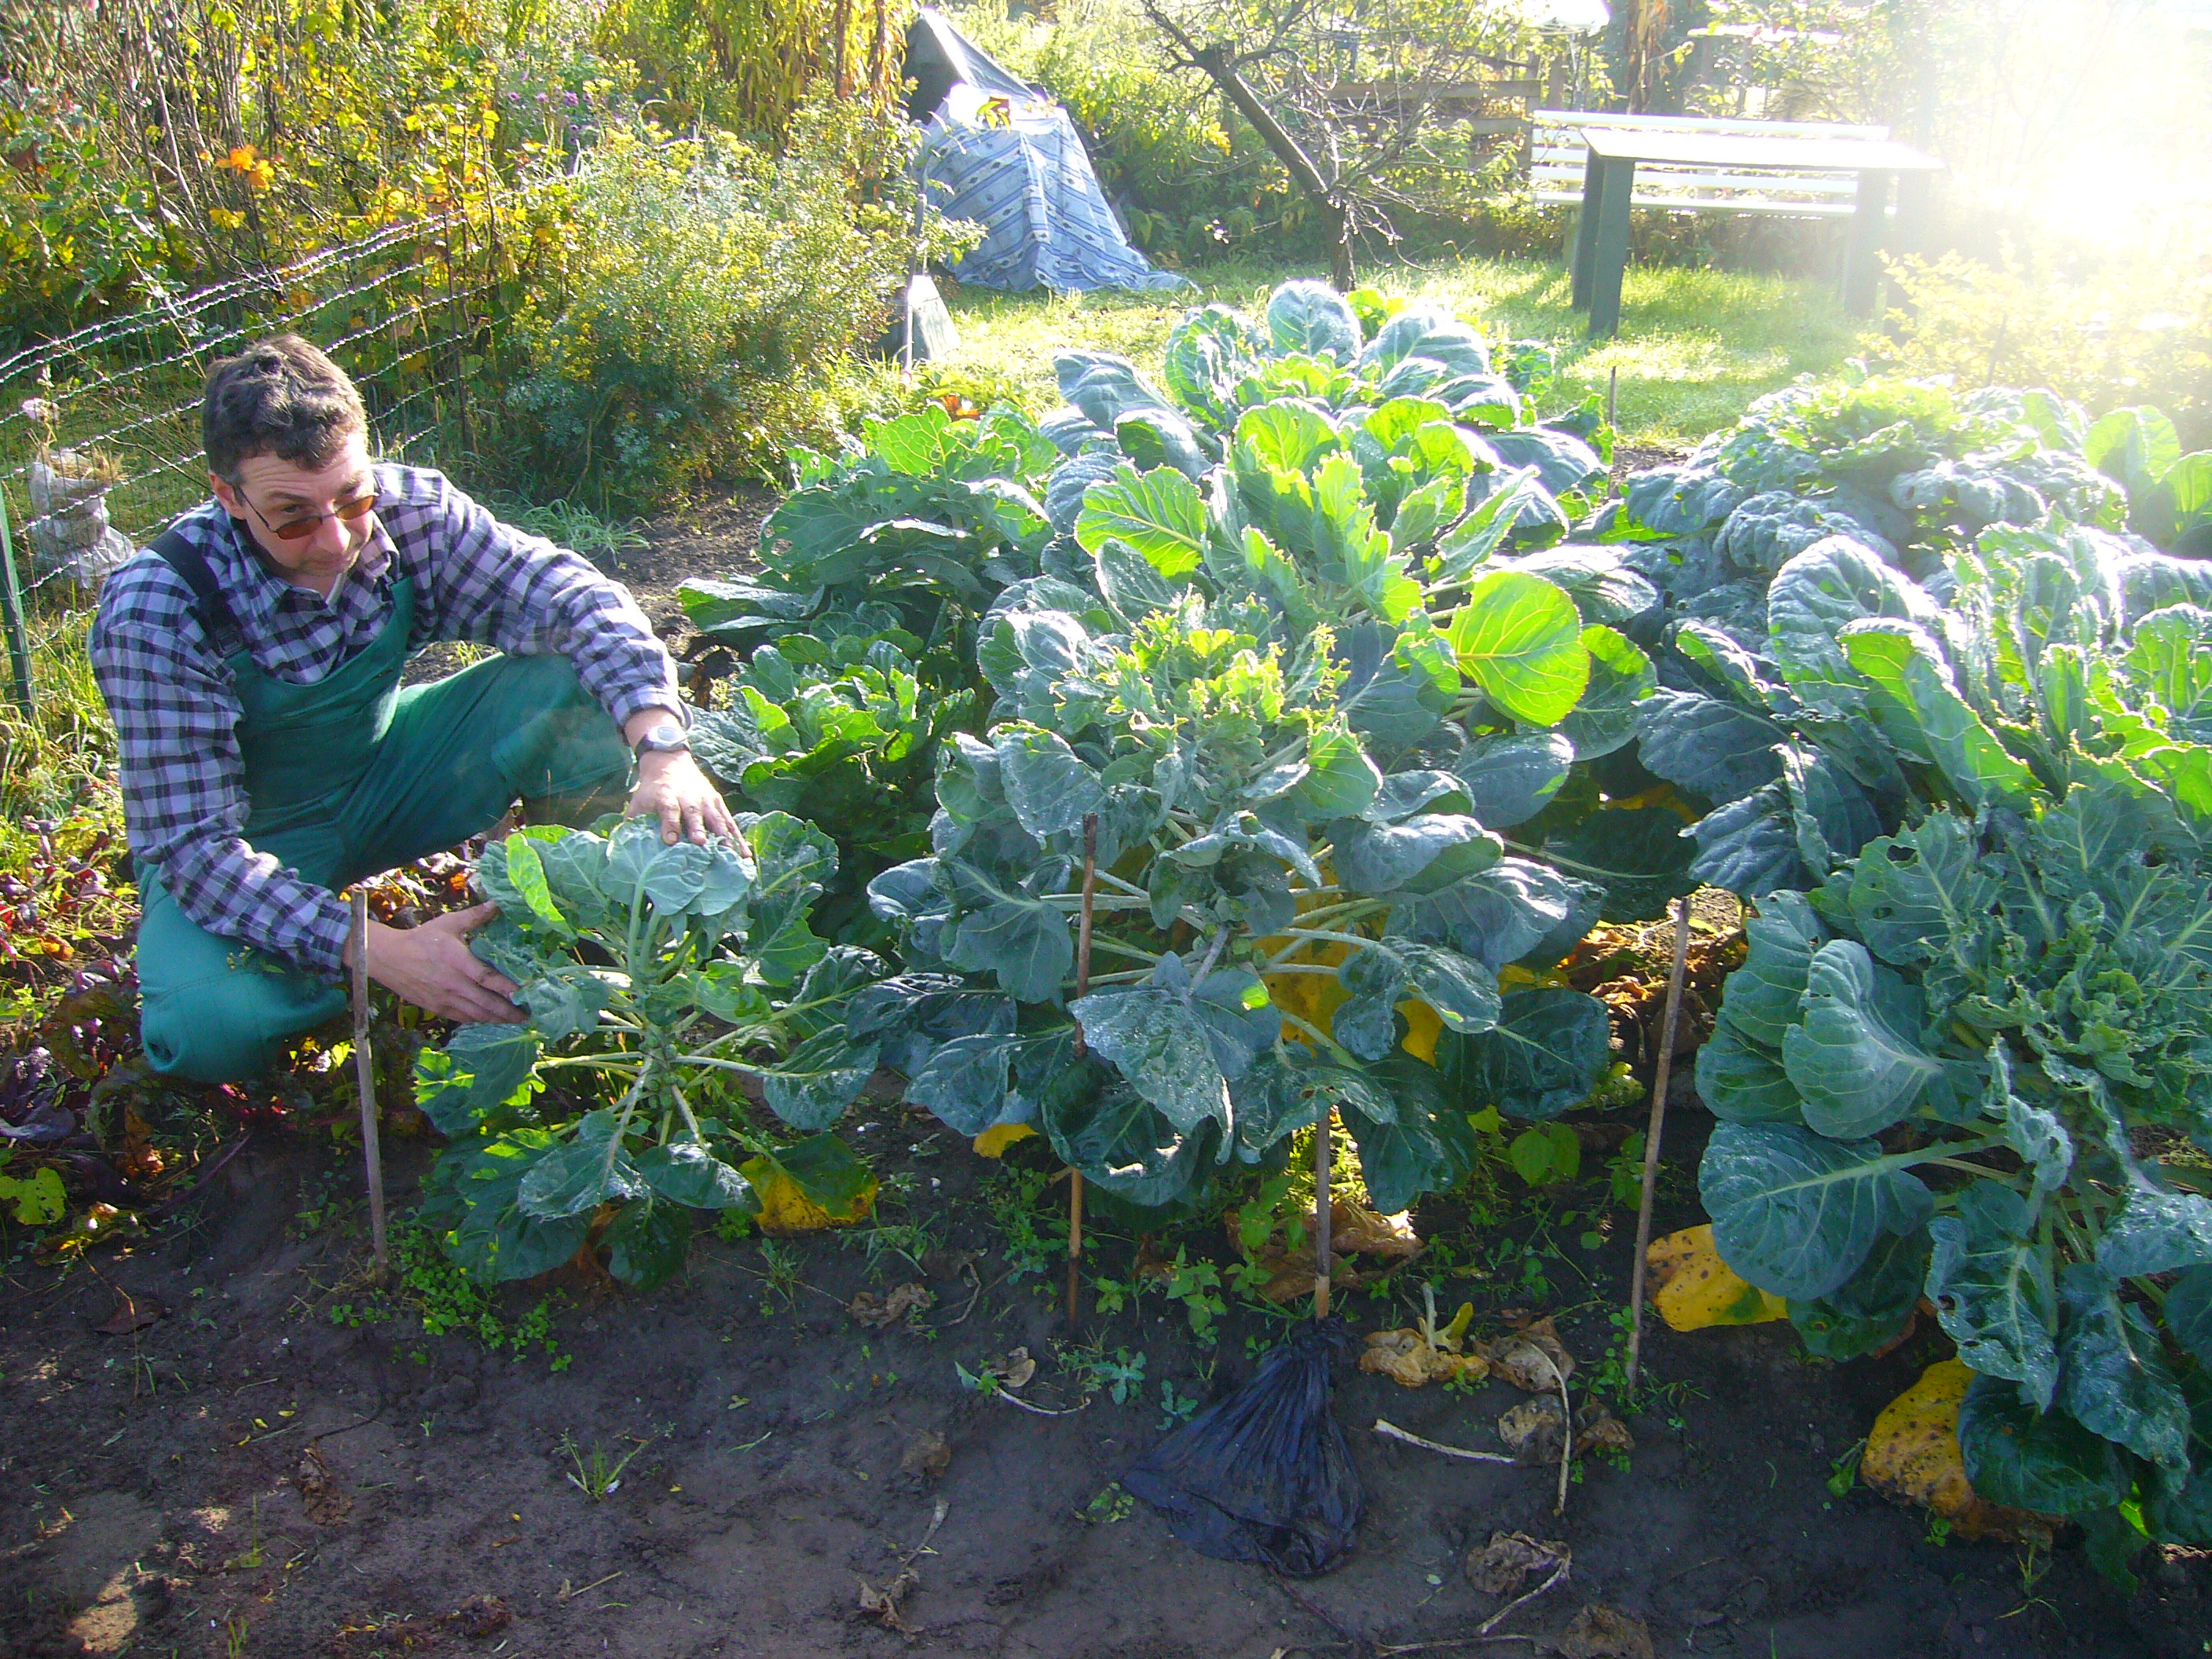 A farmer in a field using organic fertilizer